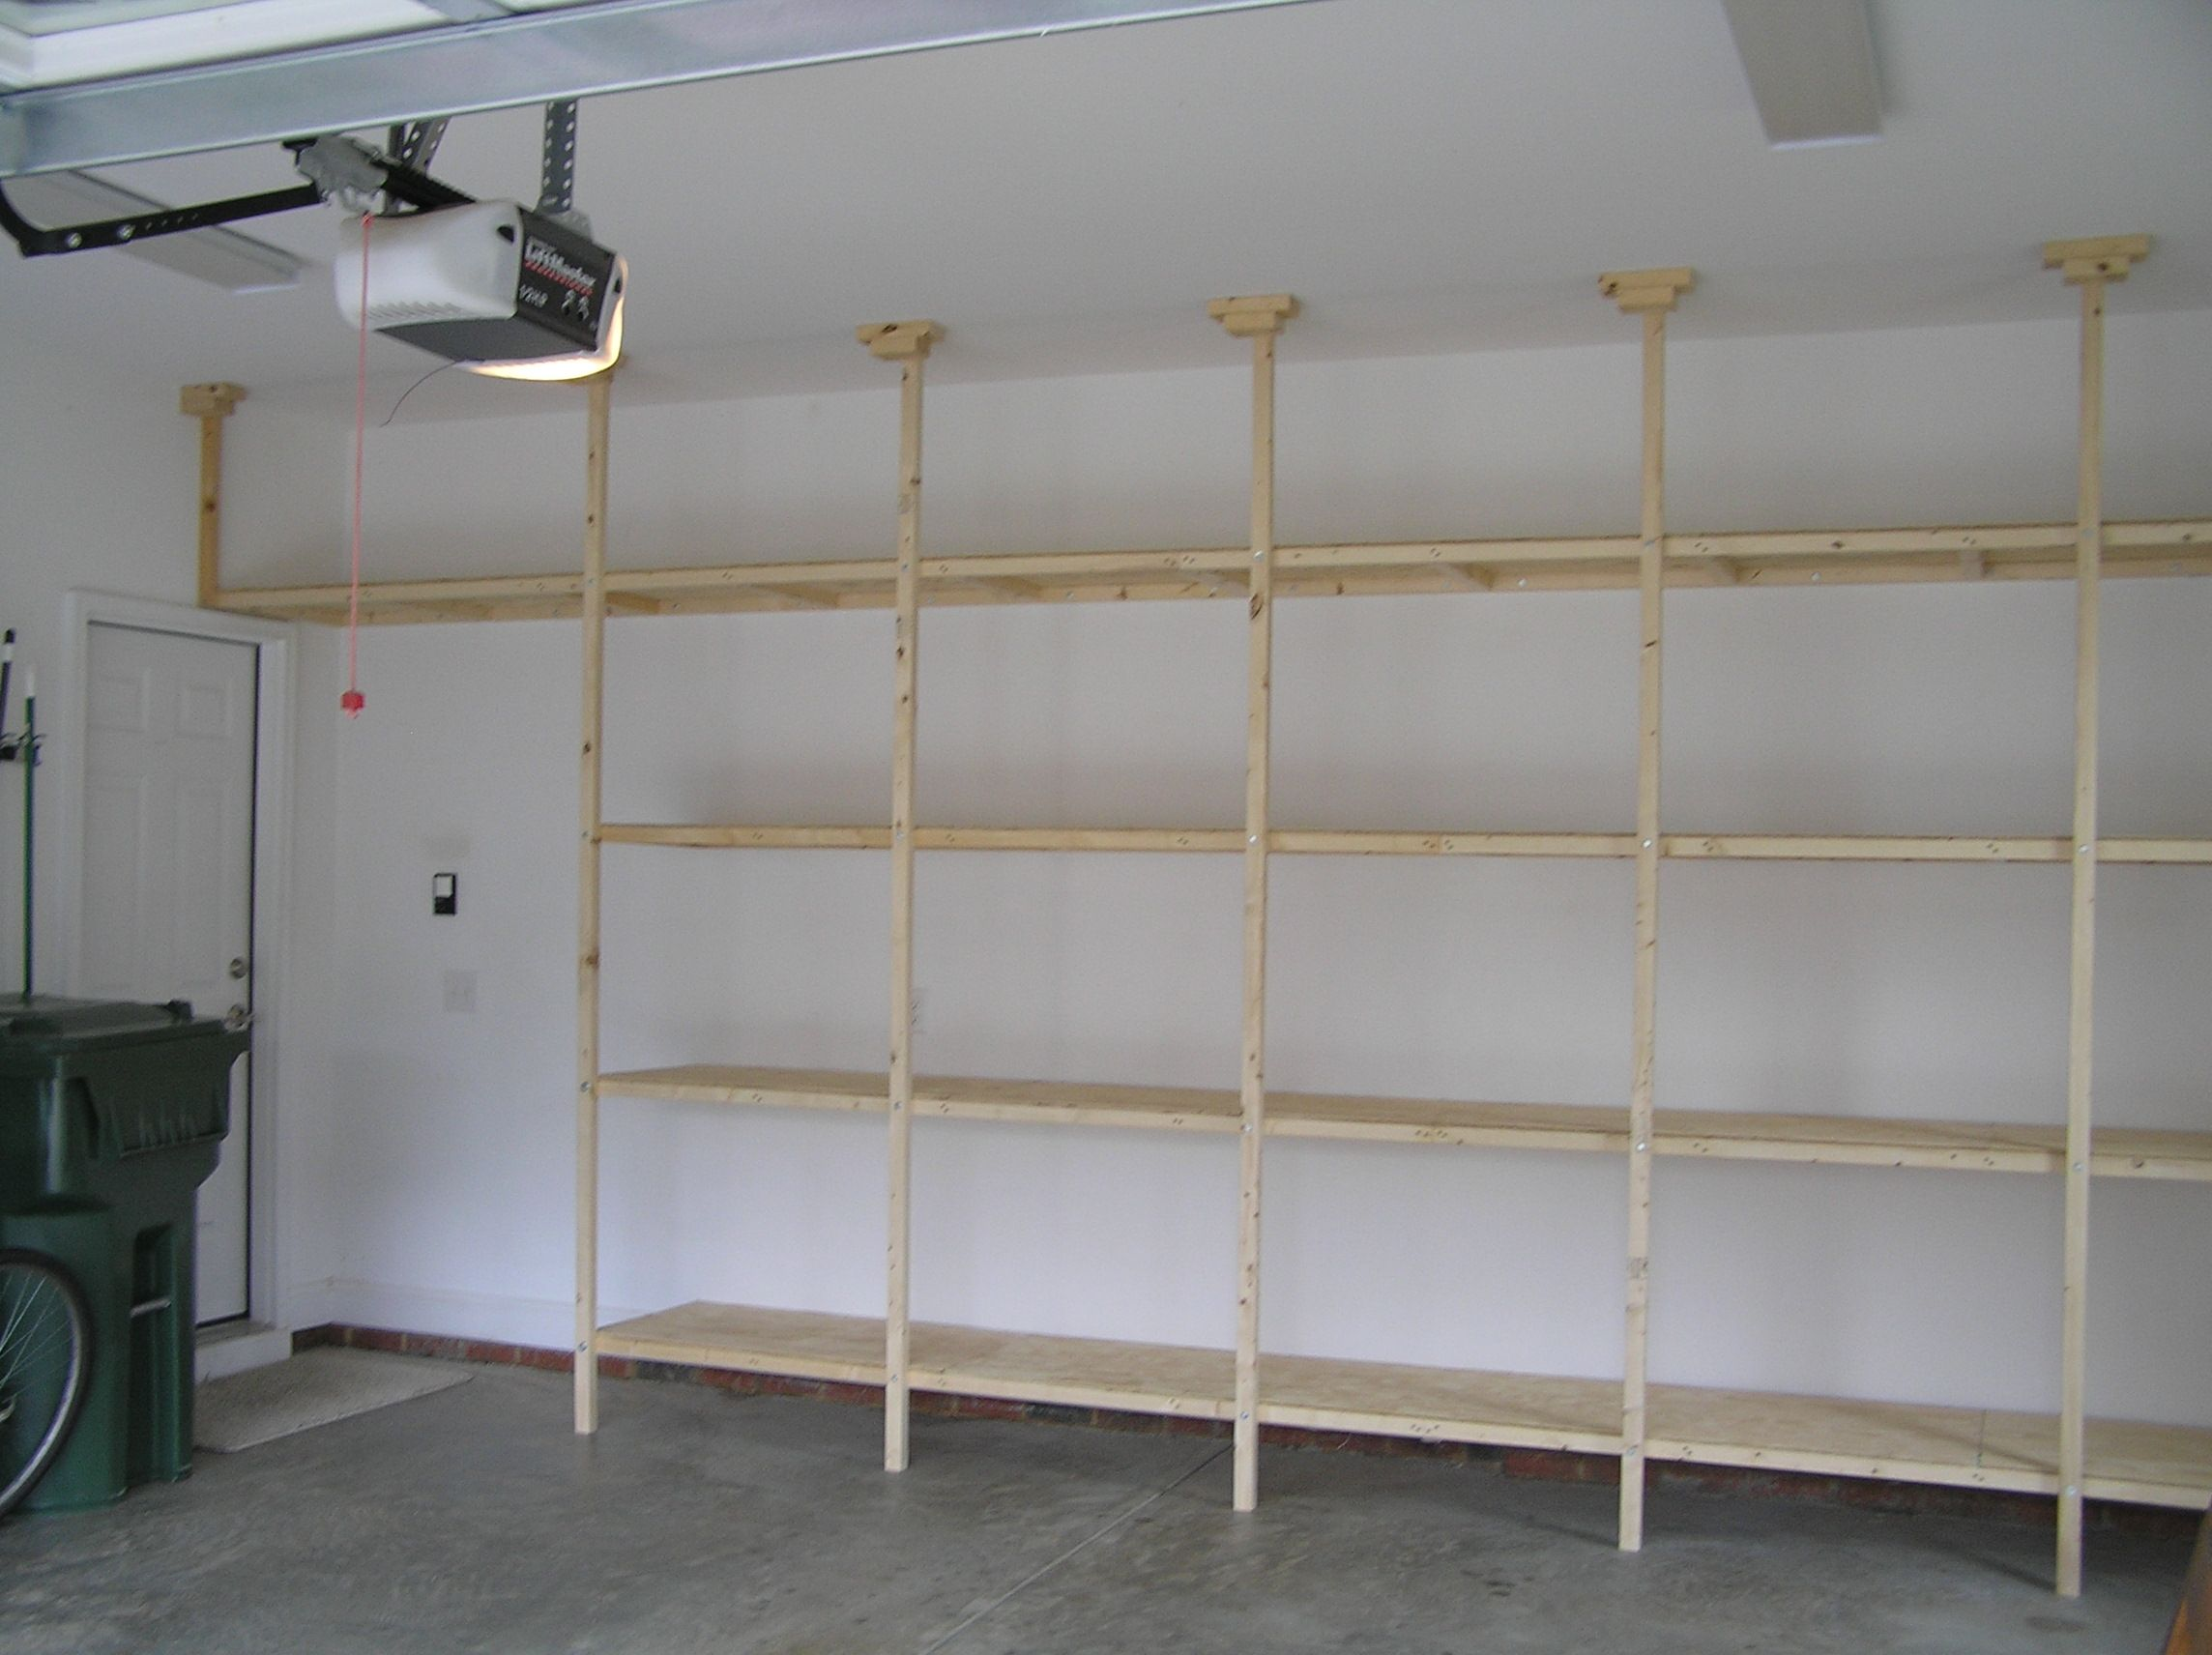 http www.askthebuilder.com how-to-garage-shelving-ideas - Garage shelf idea dream home